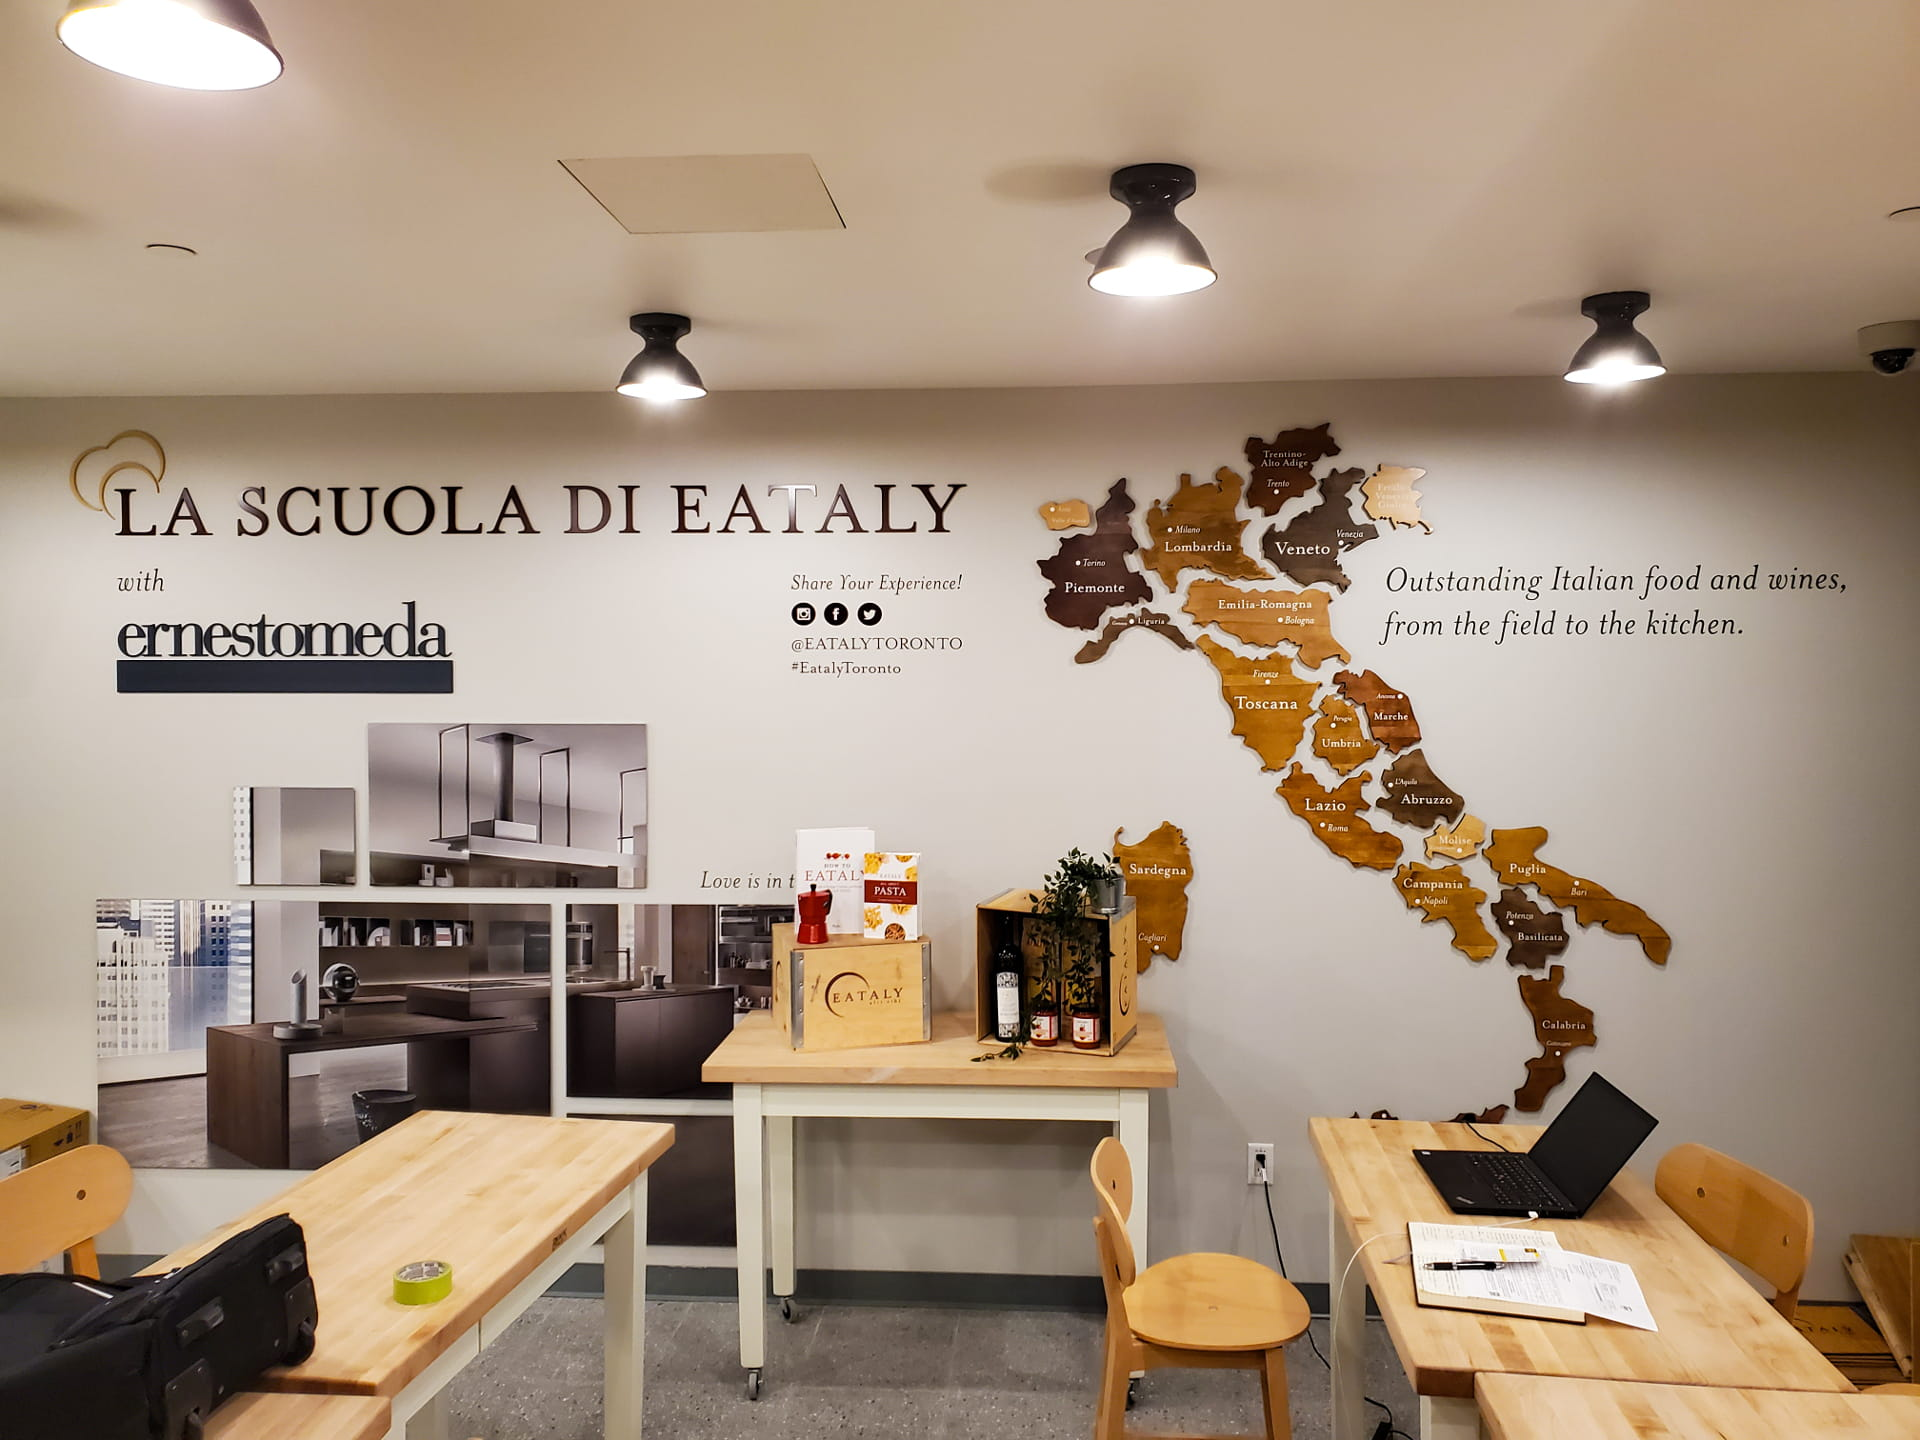 Eataly Restaurant Sign installation by Signarama Toronto